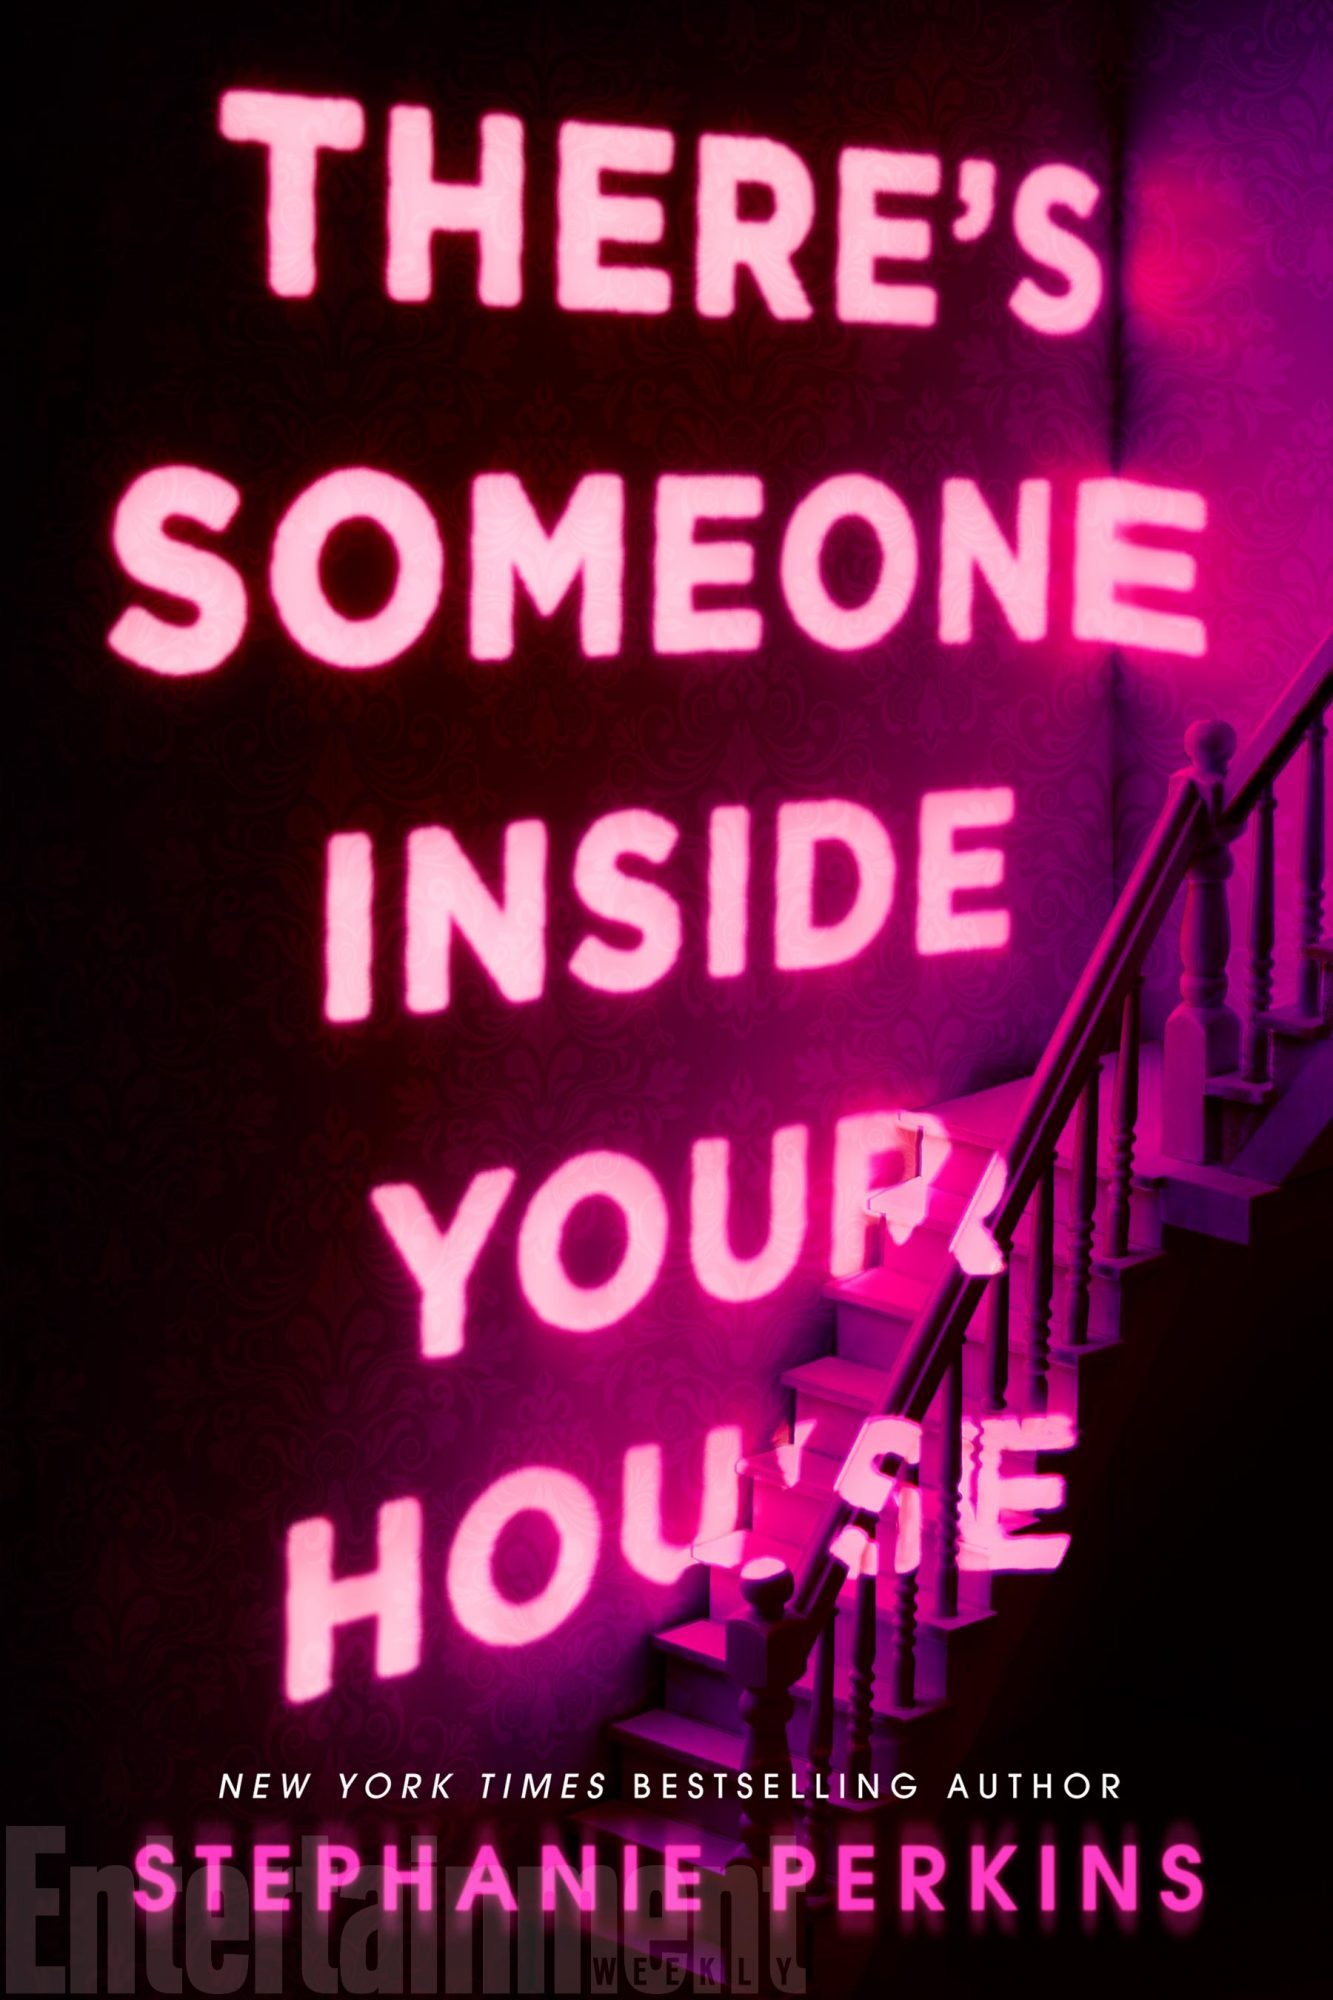 THERE'S-SOMEONE-INSIDE-YOUR-HOUSE-by-Stephanie-Perkins